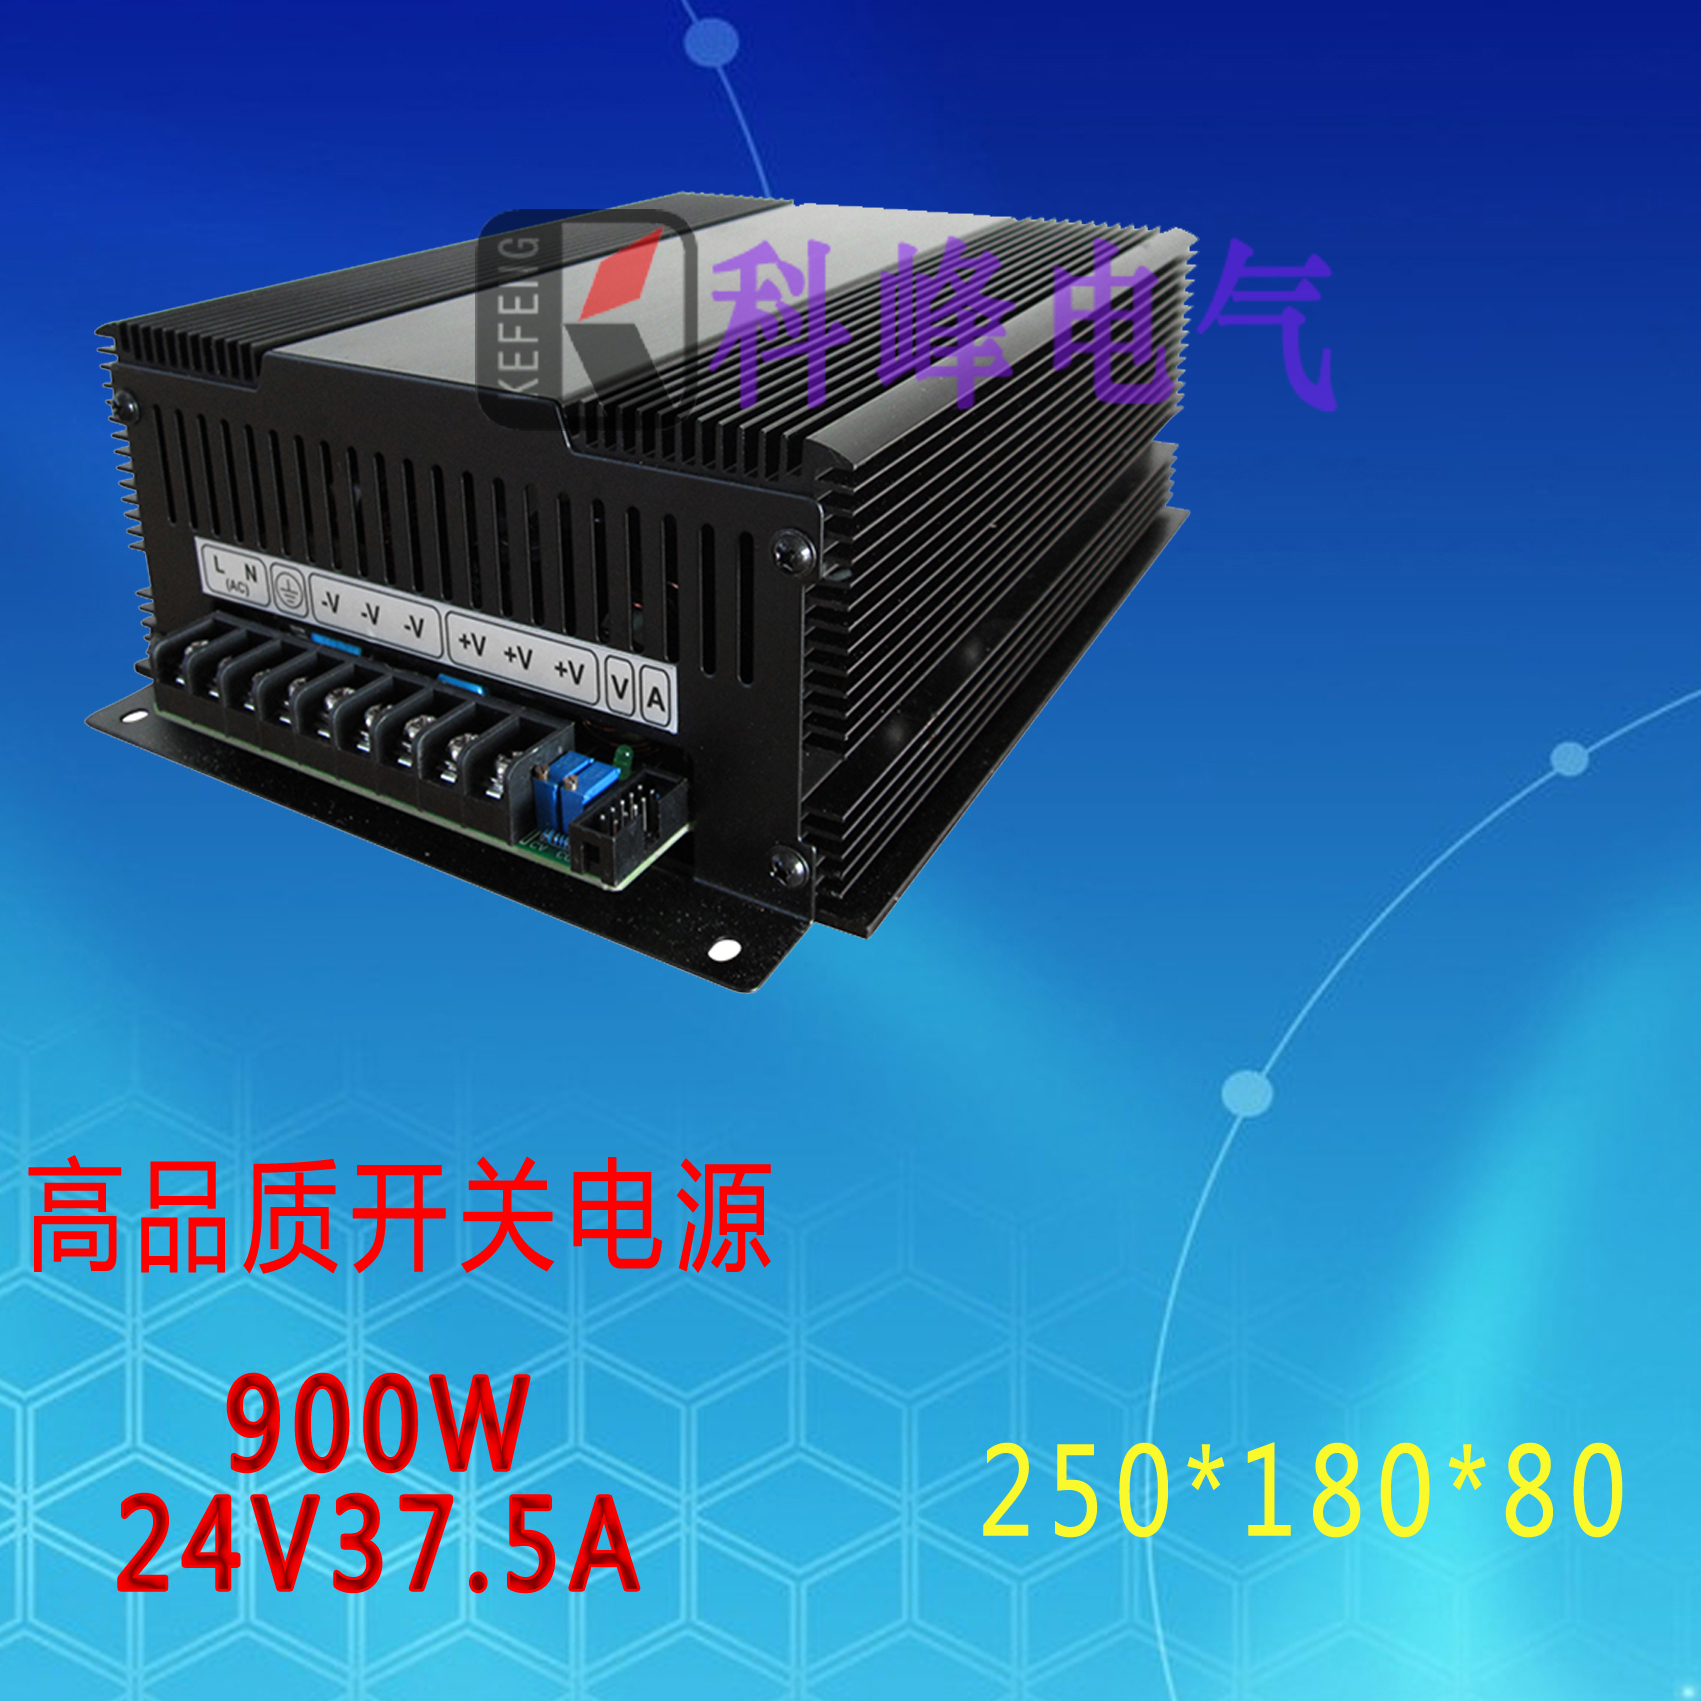 0-24V37.5A adjustable DC constant voltage constant current switching power supply, testing power supply, the whole process adjustable, special price